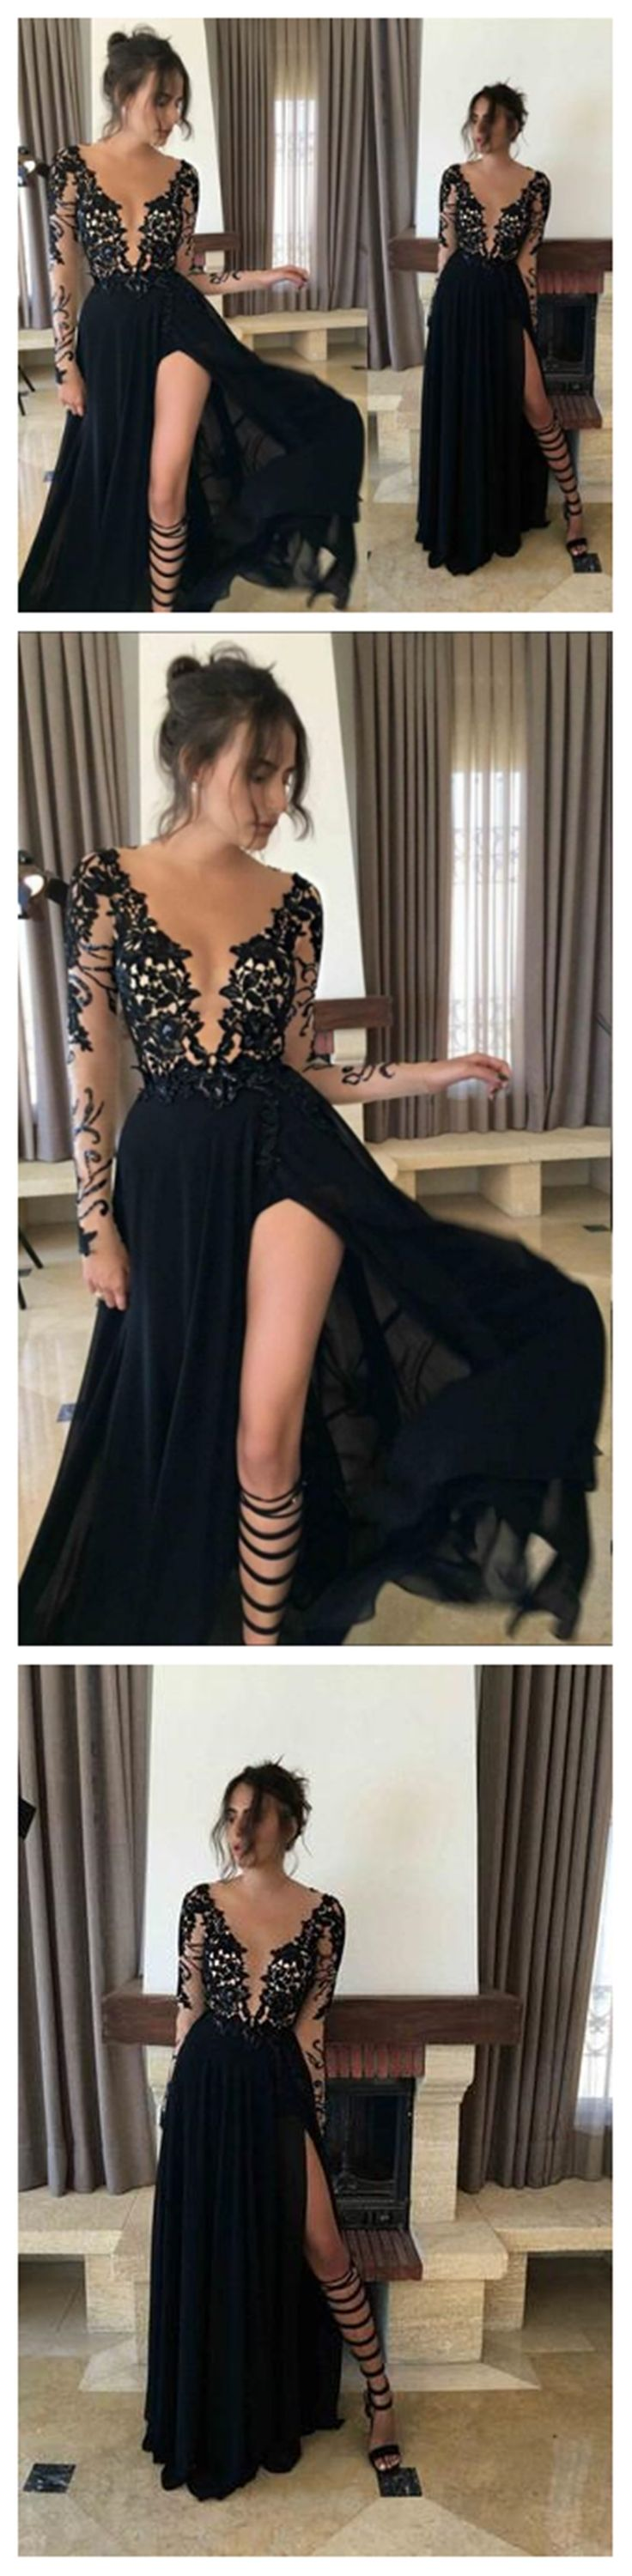 Long Sleeve Black Mermaid Evening Prom Dresses, Sexy Deep V Neckline Slit Party Prom Dress, Custom Long Prom Dresses, Cheap Formal Prom Dresses, 17076